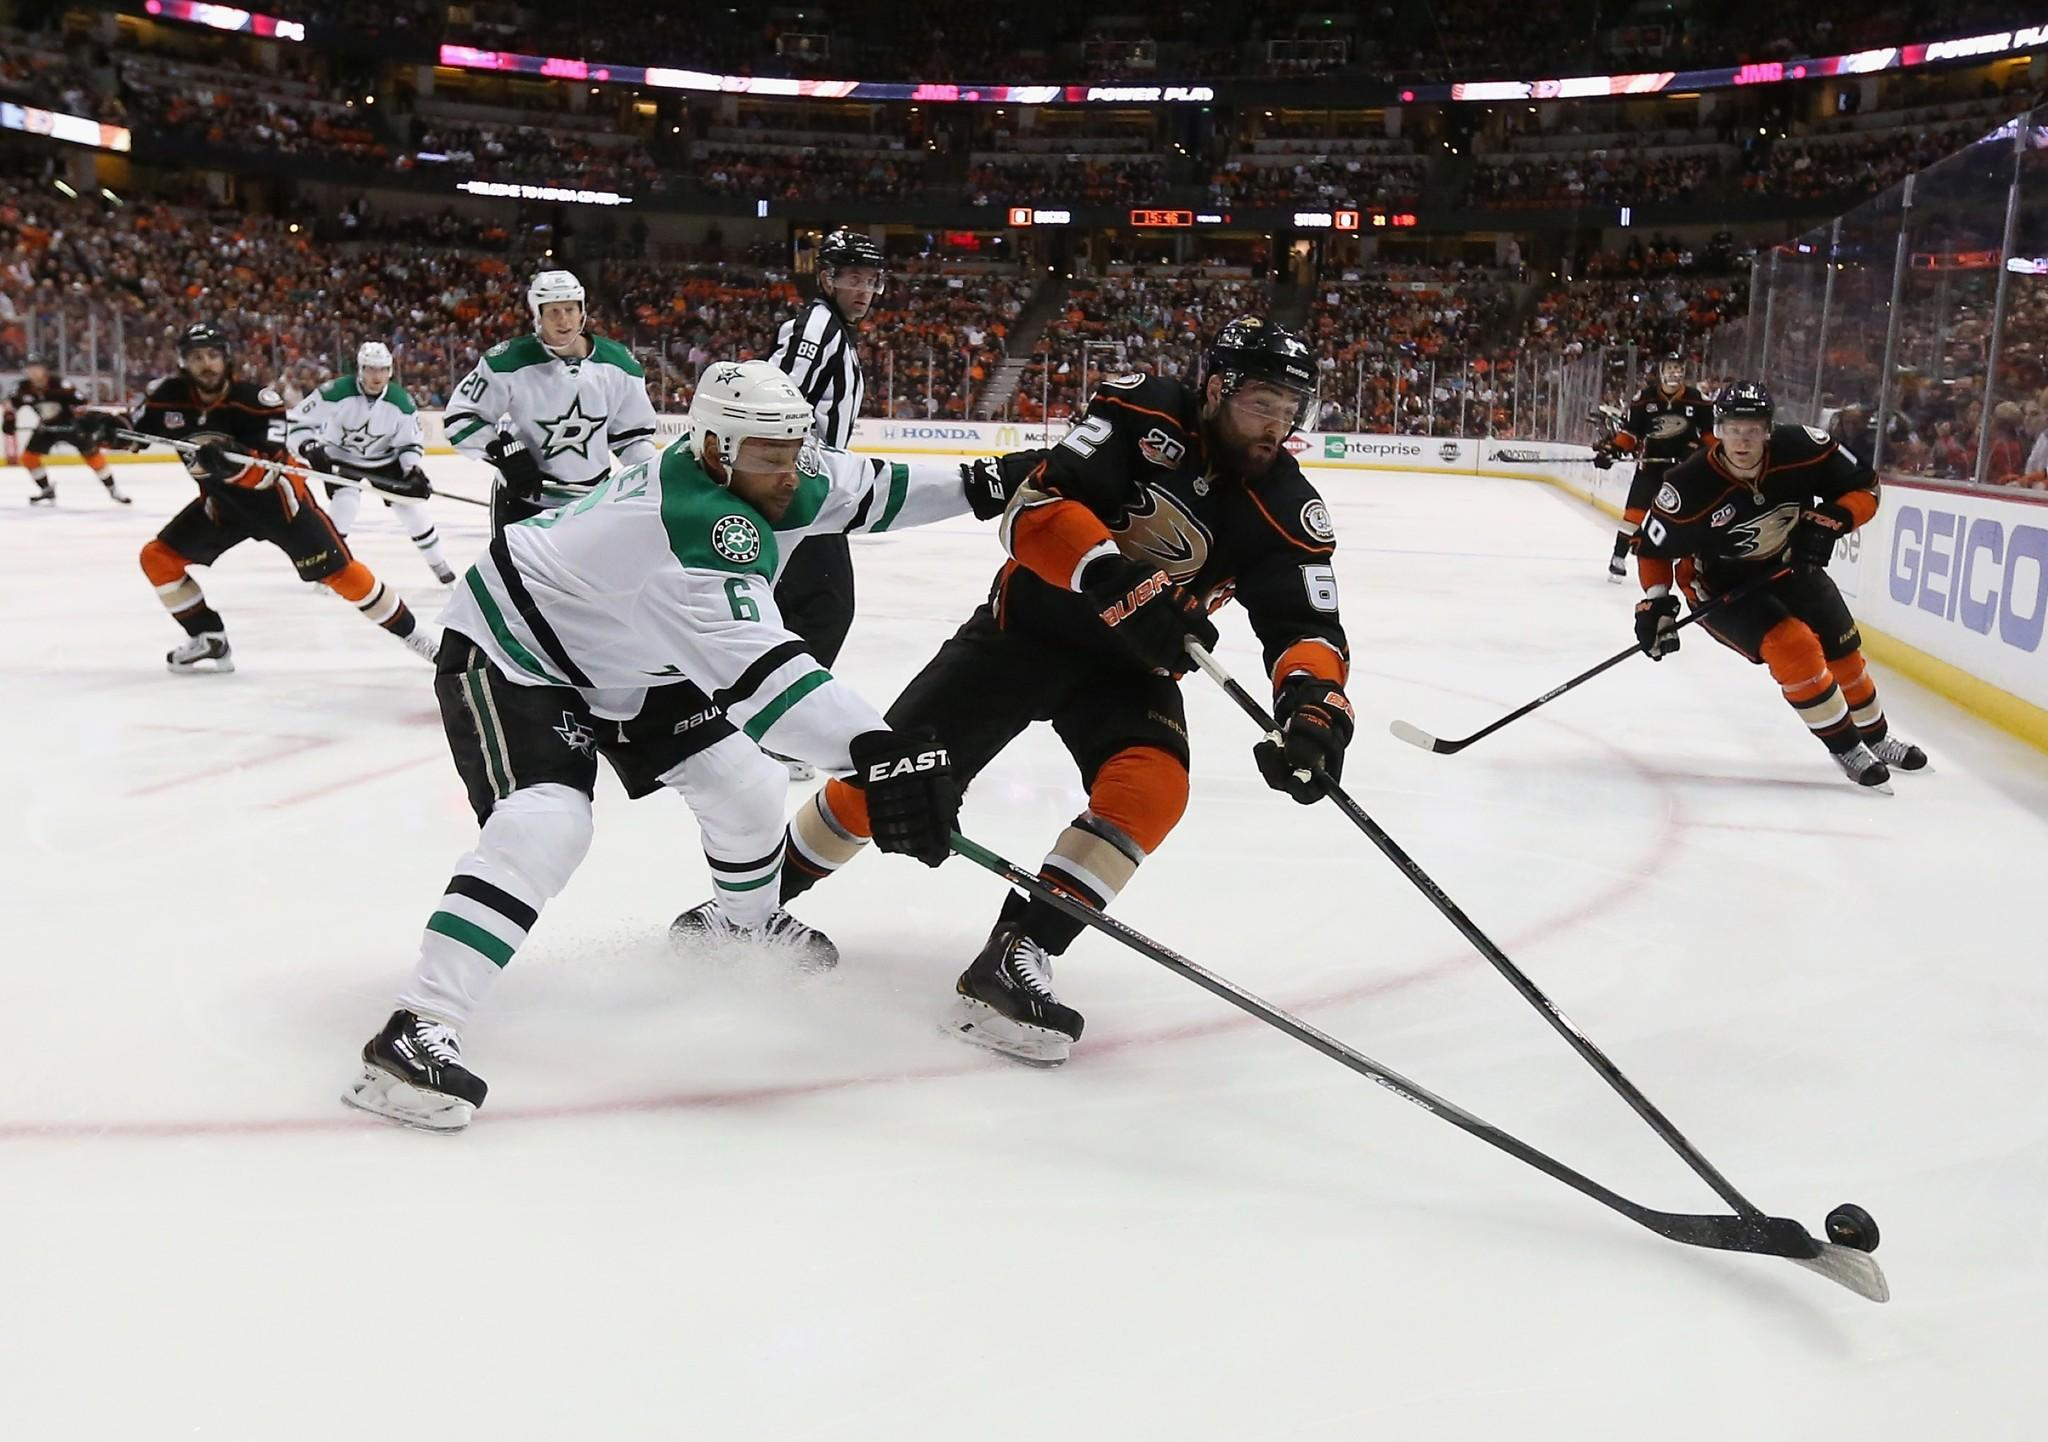 Patrick Maroon, right, battles Dallas' Trevor Daley during the Ducks' 6-2 victory in Game 5 of the teams' playoff series Friday at the Honda Center.